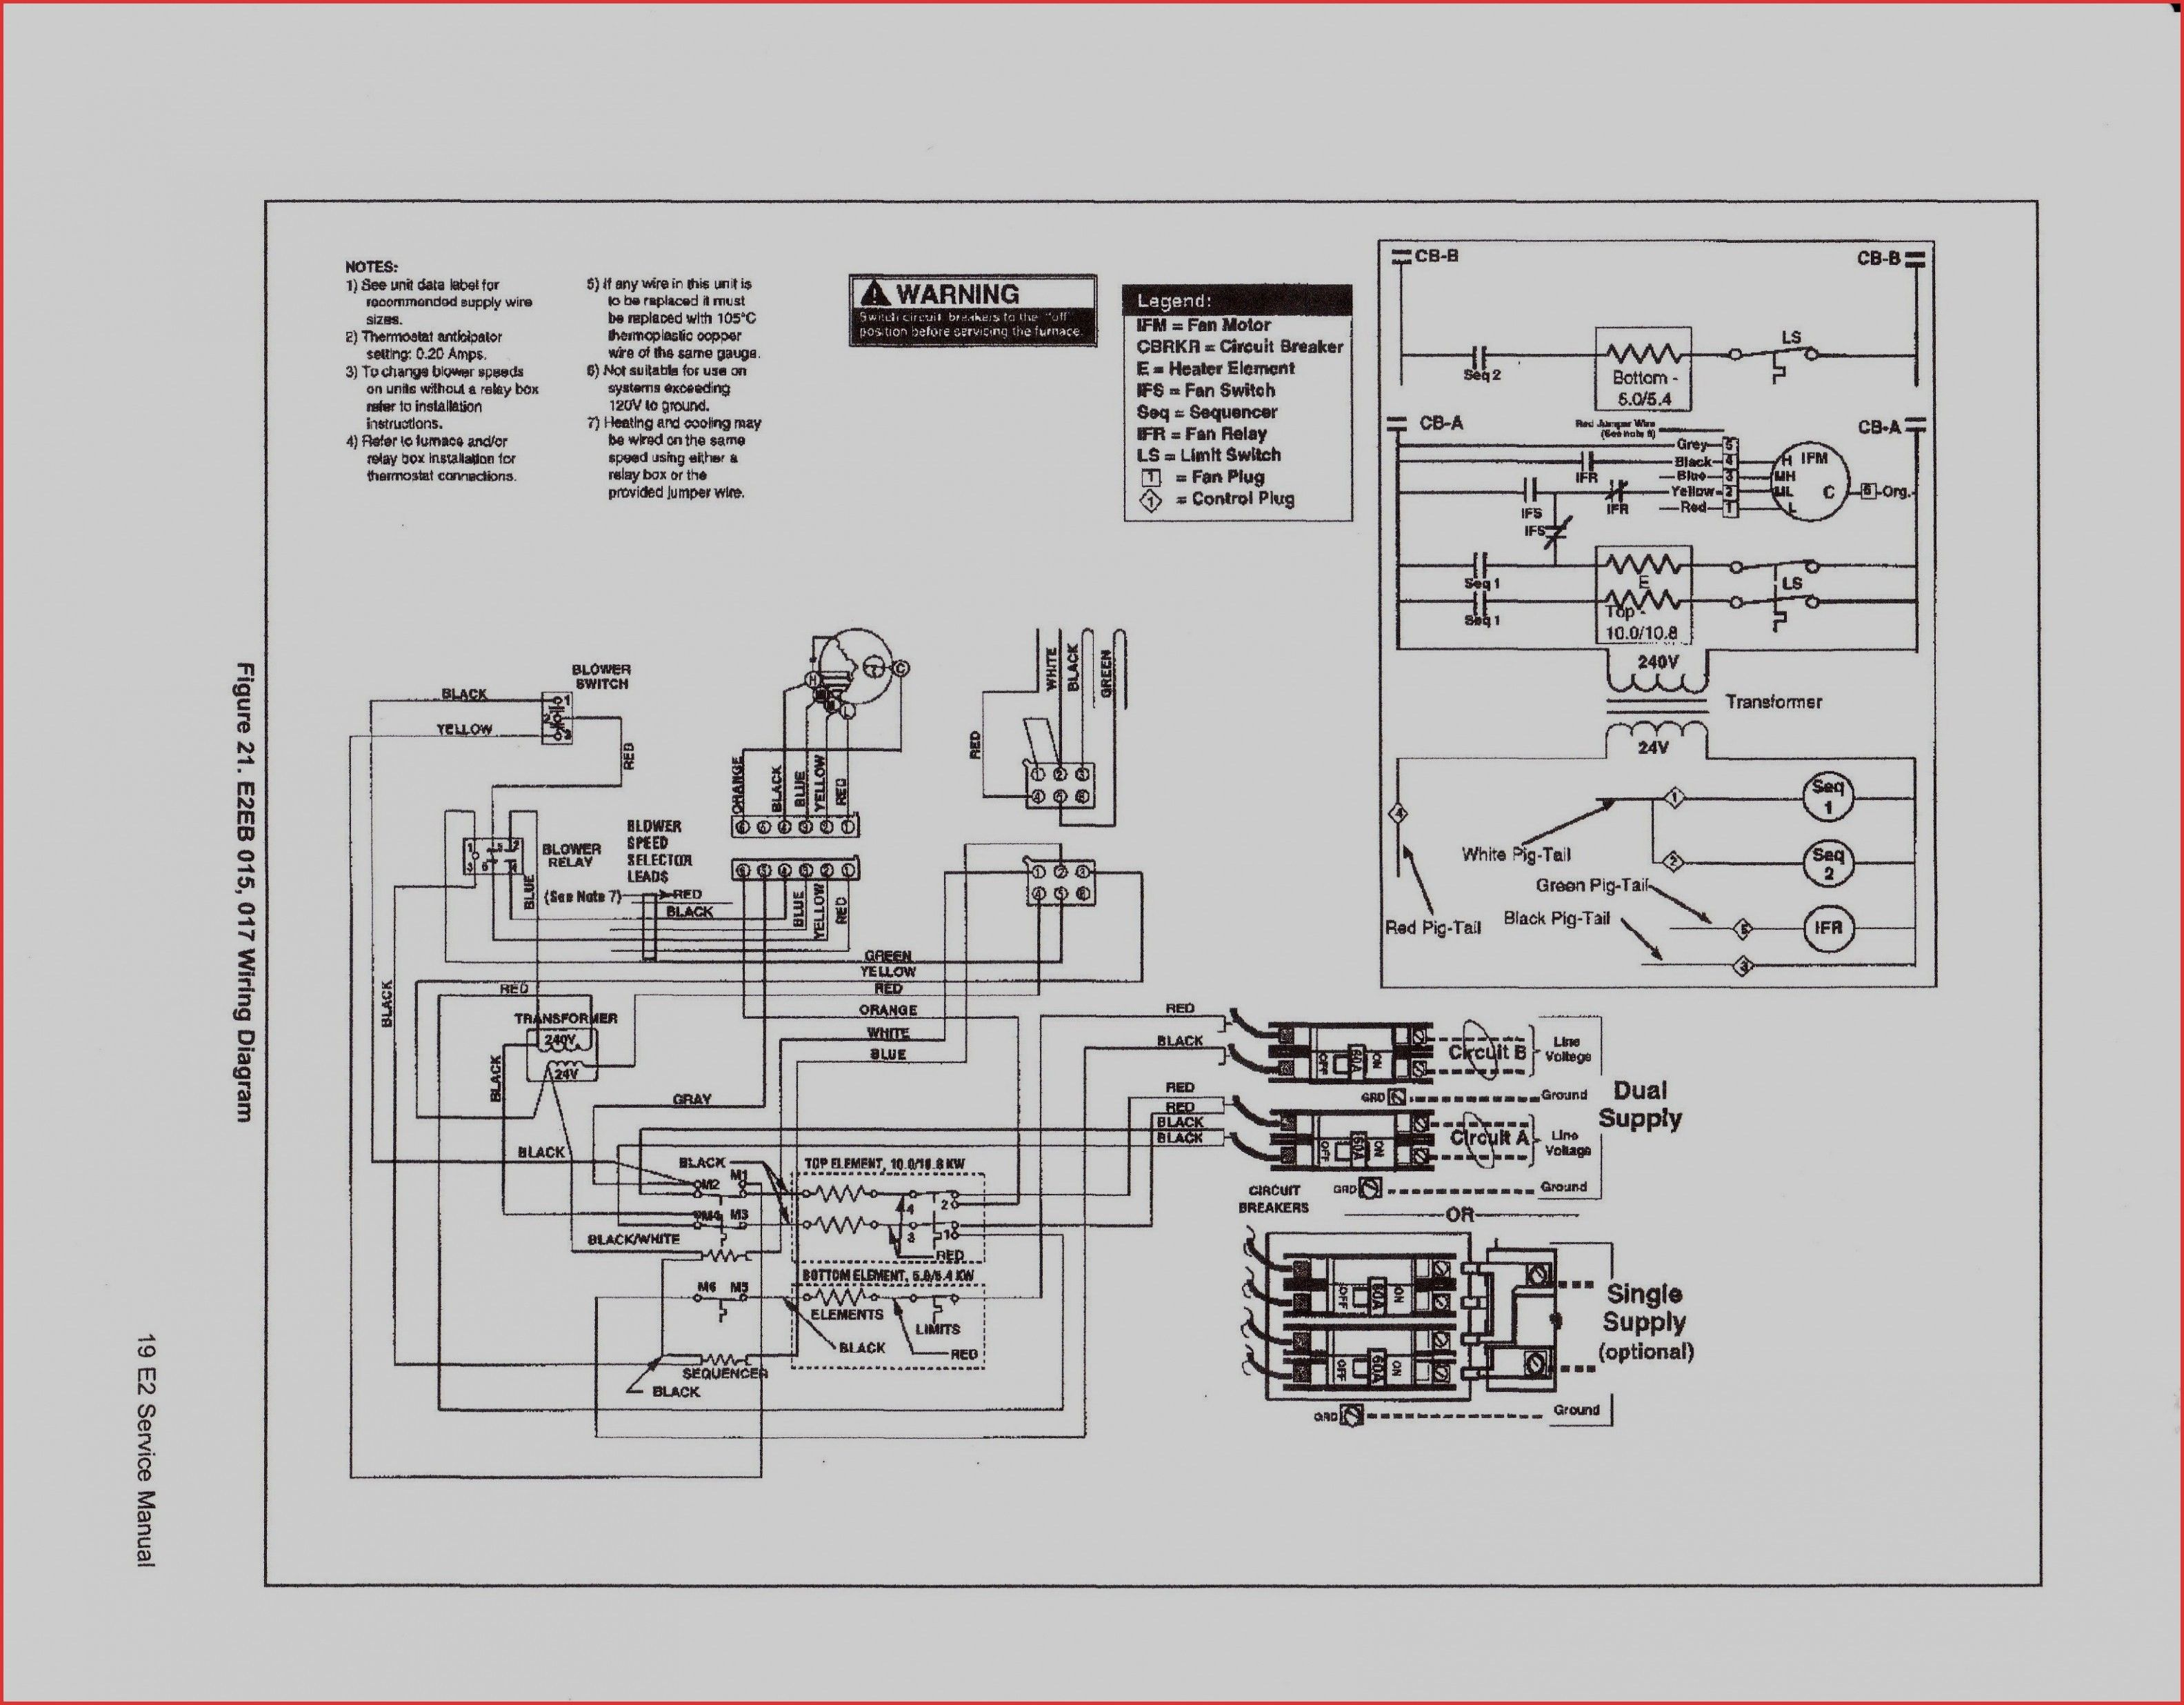 New Wiring Diagram Ruud Ac Unit Diagramsample